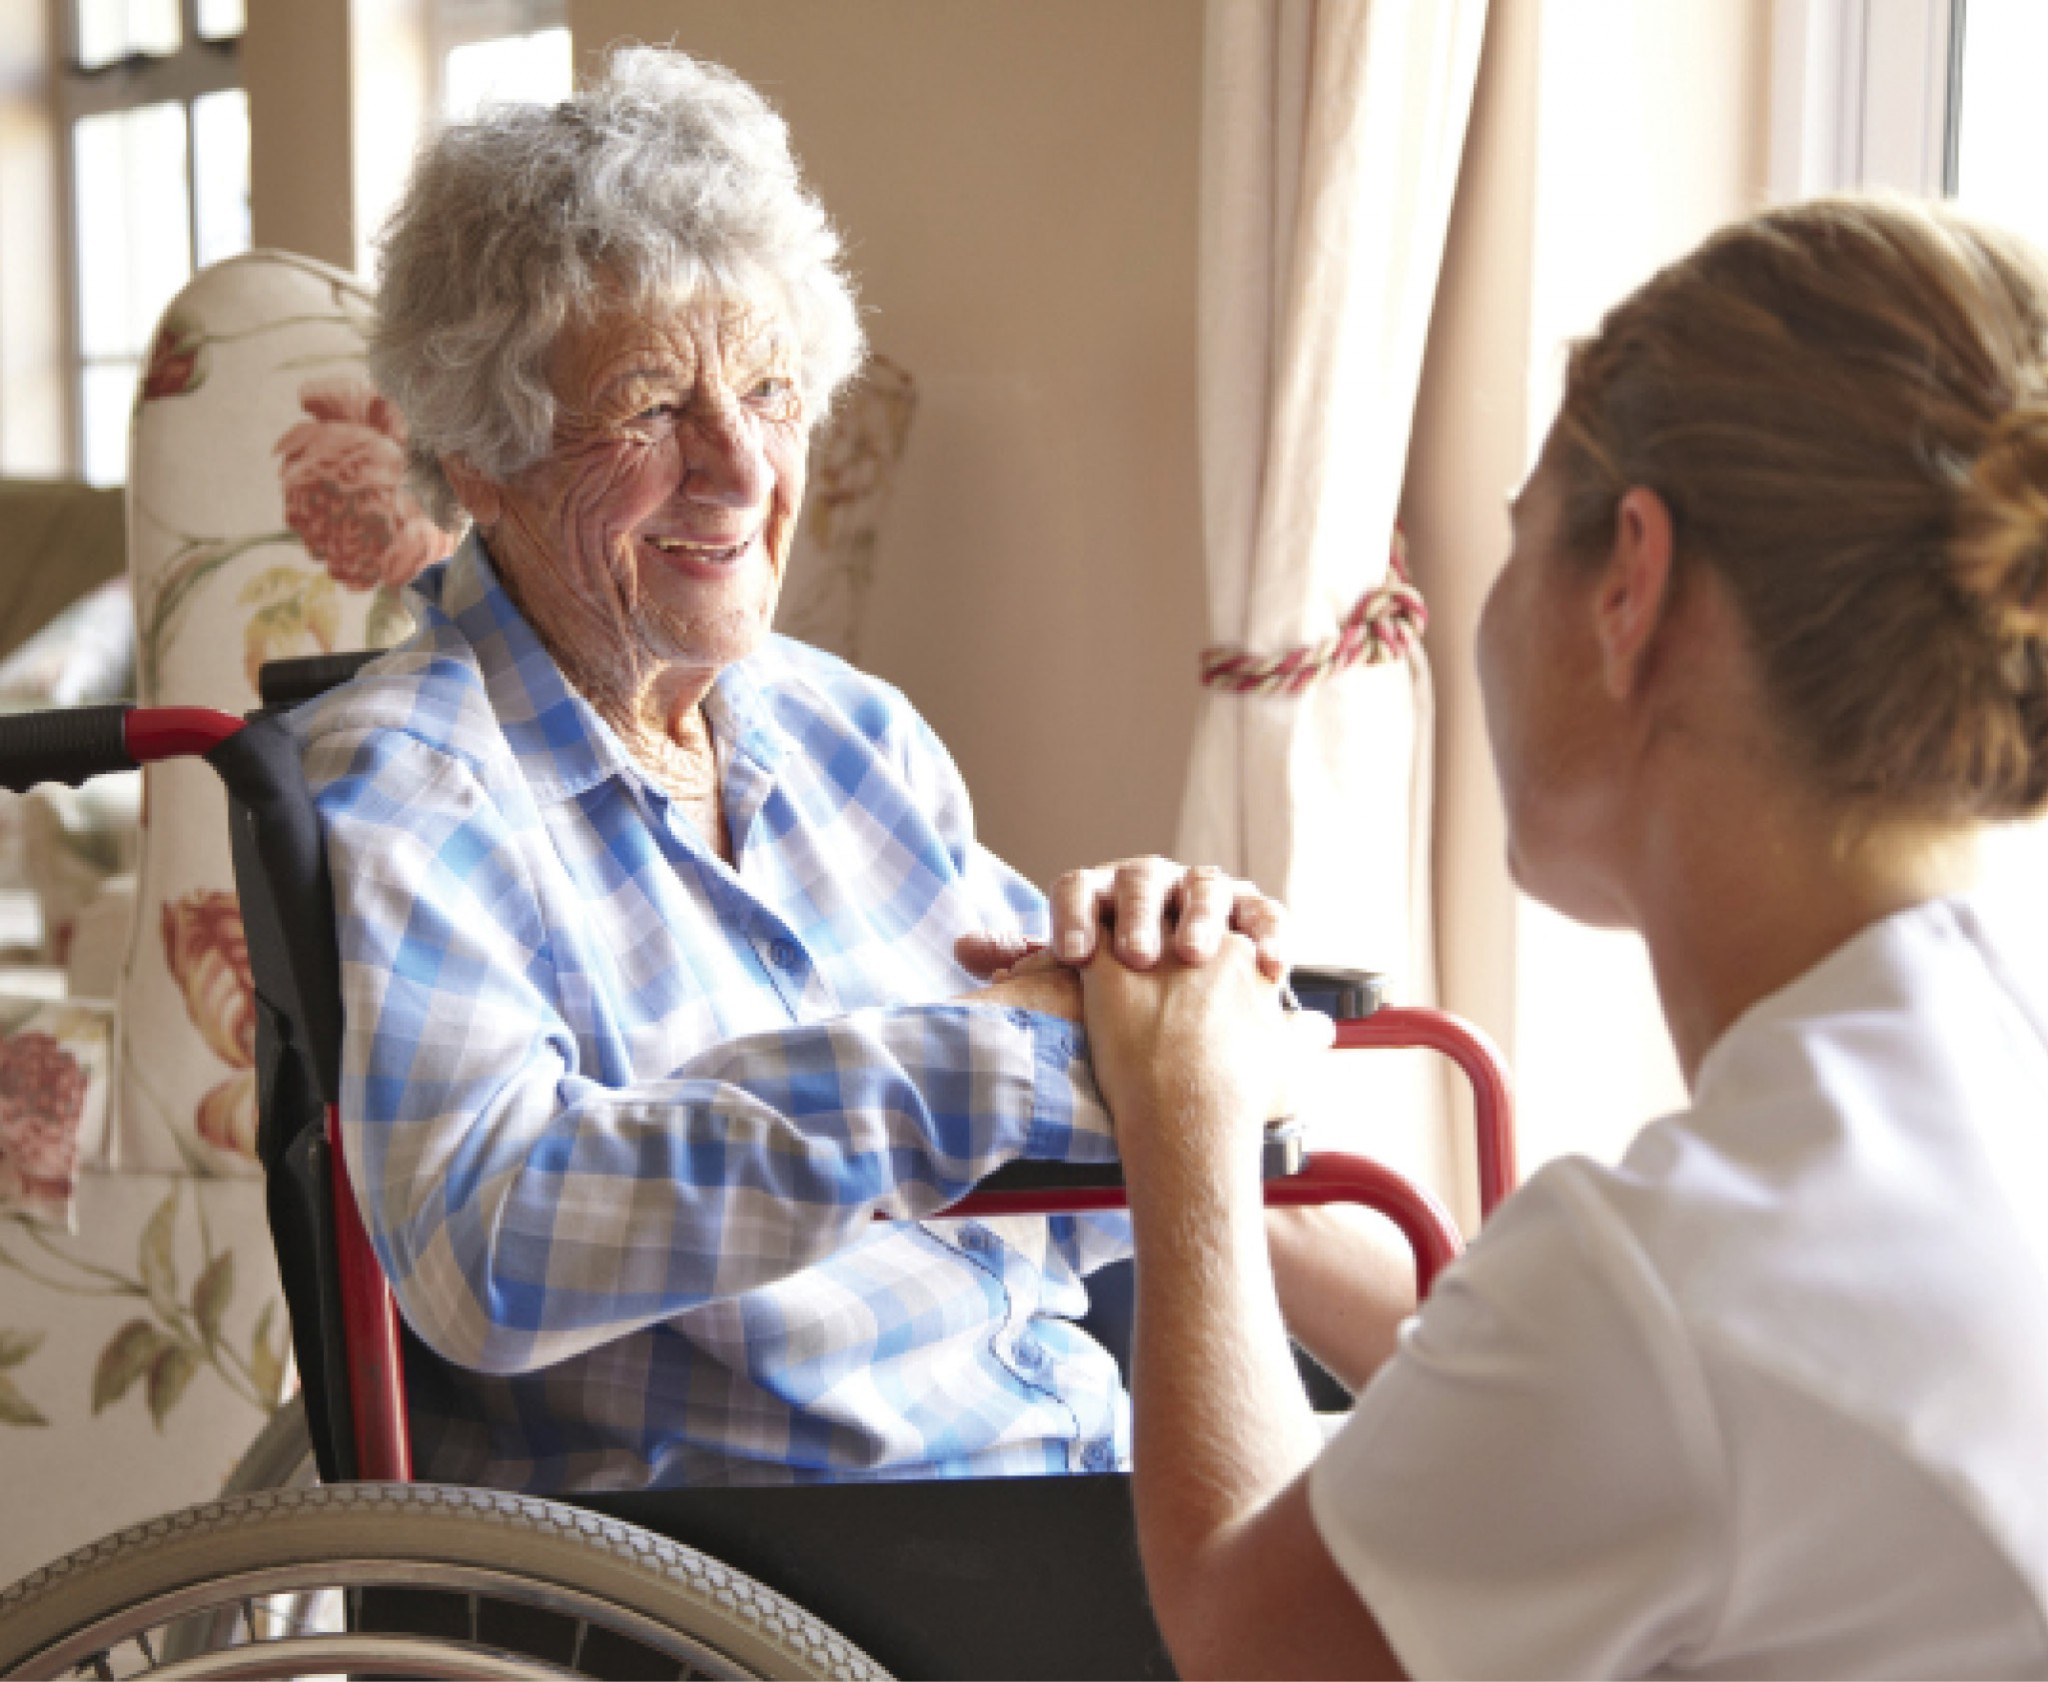 Nursing older adults with mental health problems